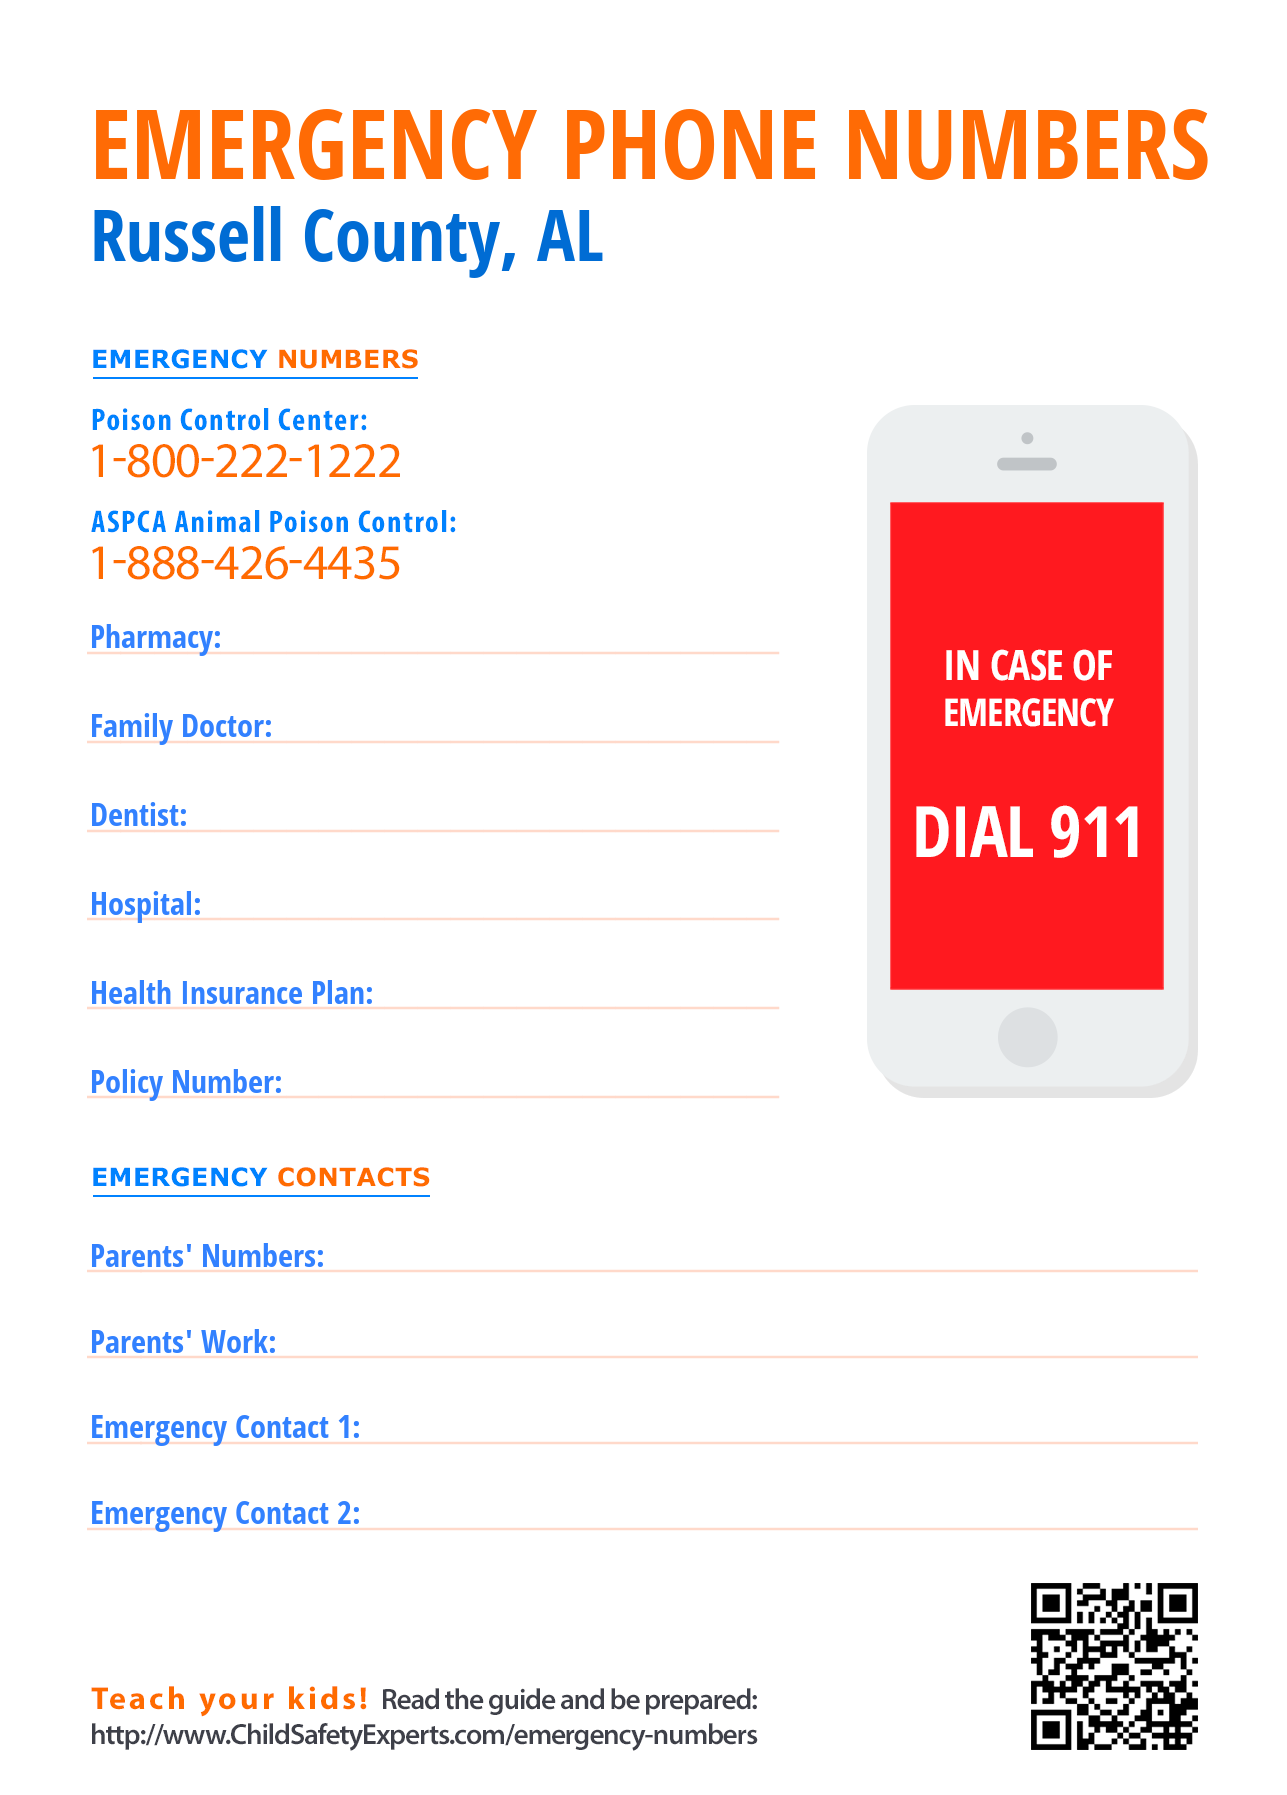 Important emergency phone numbers in Russell County, Alabama